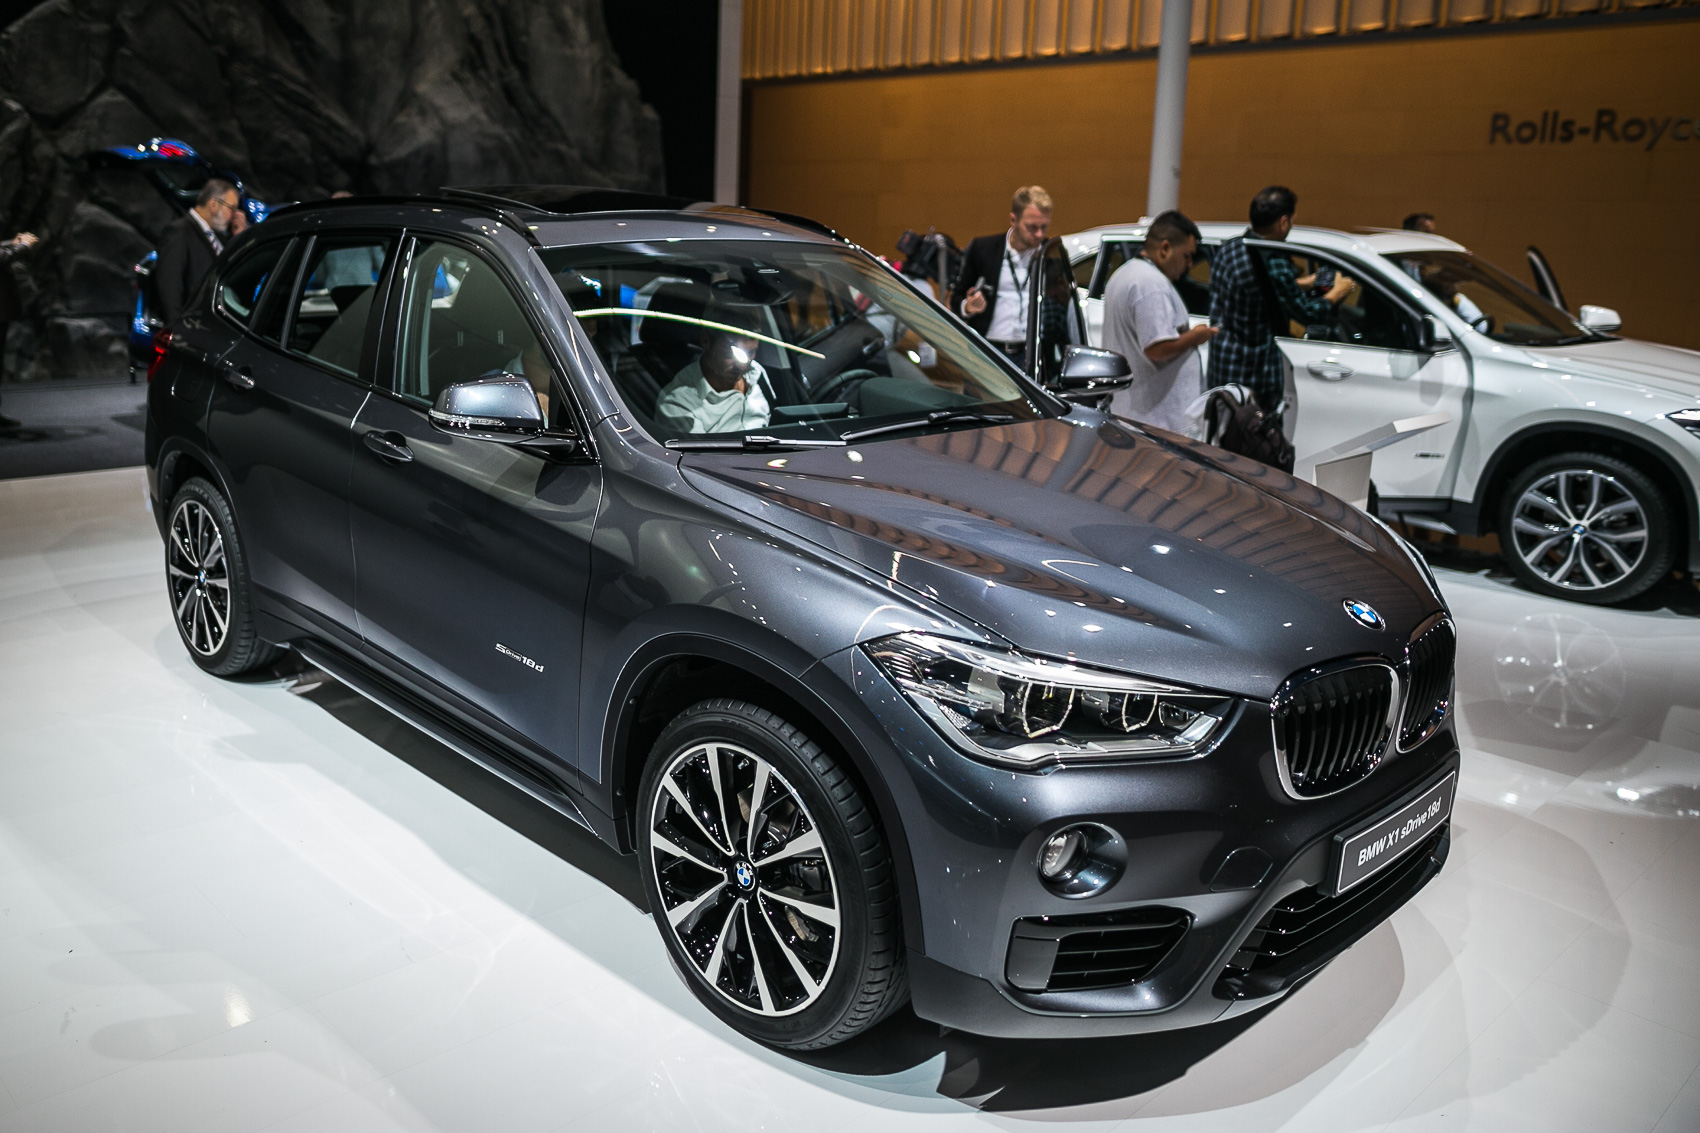 2016 bmw x1 ushers in new generation for compact crossover. Black Bedroom Furniture Sets. Home Design Ideas